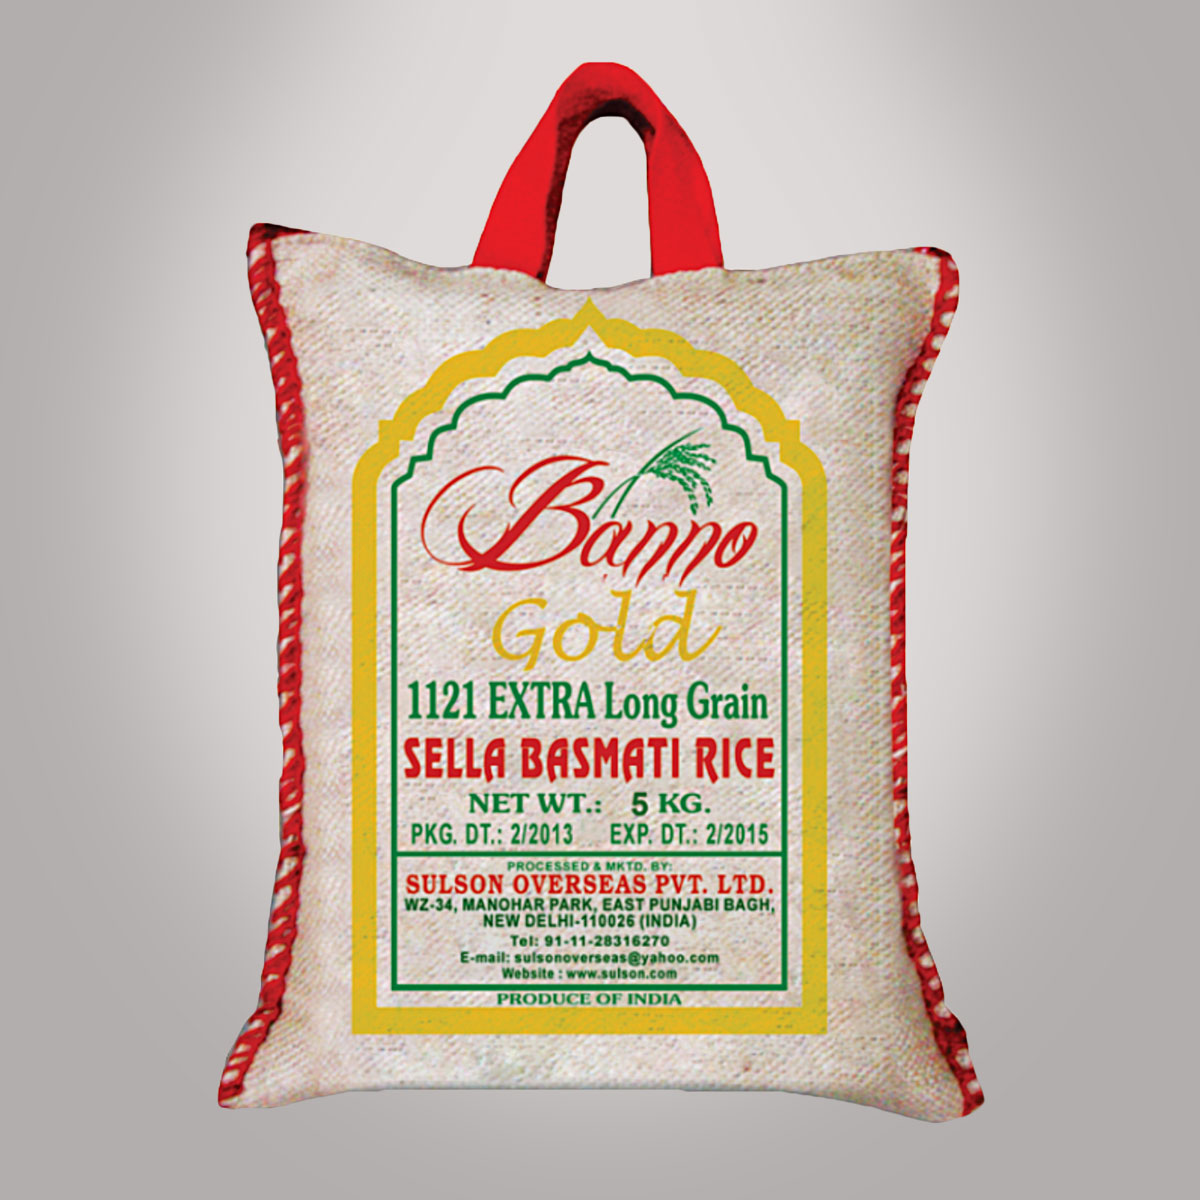 Banno Rice – Exceptional Basmati Rice From India